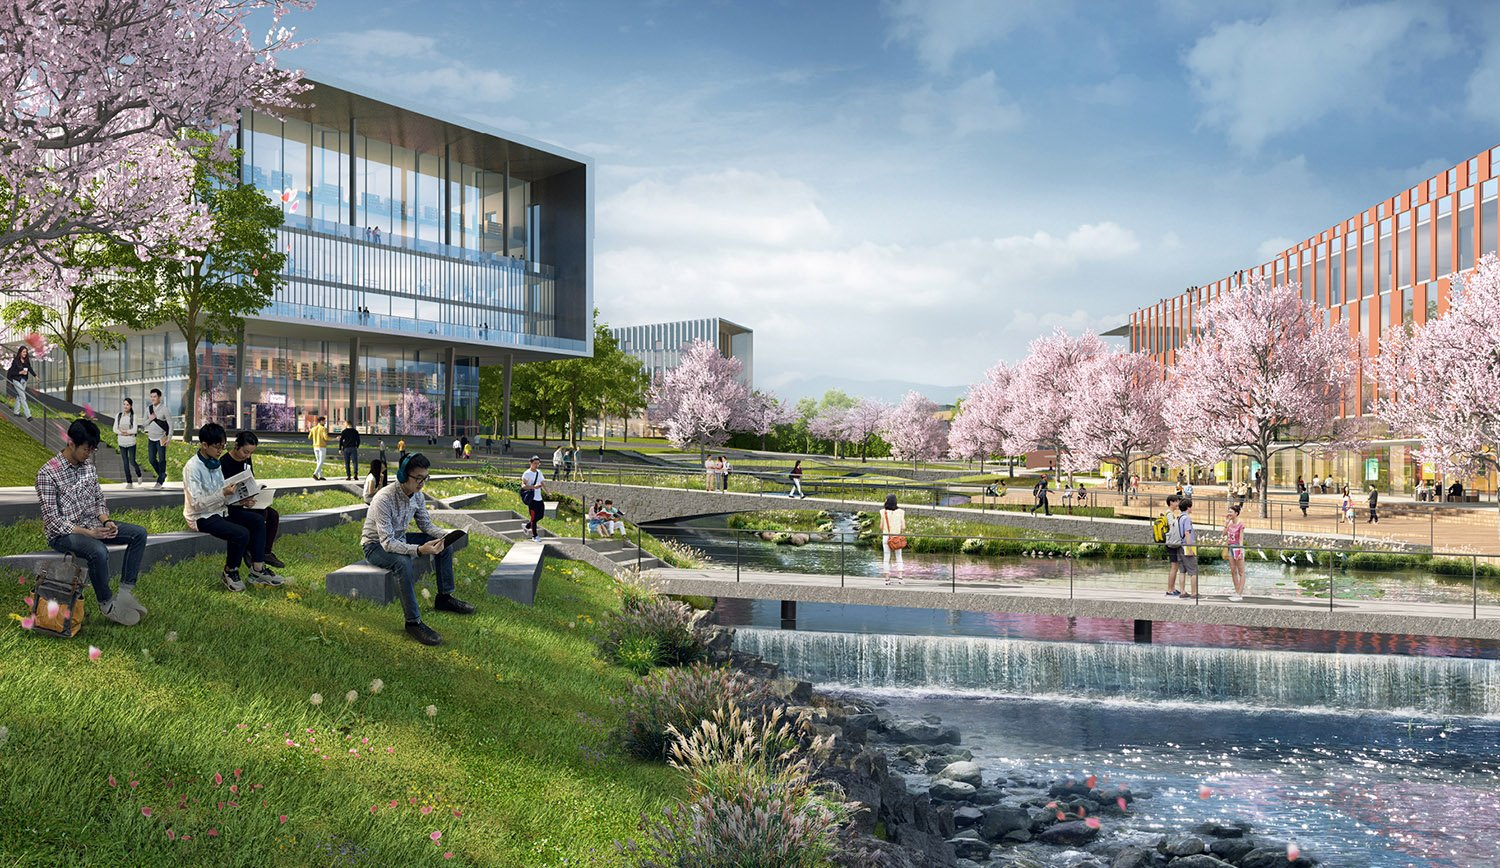 The academic valley is a multifaceted landscape that offers many ecosystem services while providing critical campus connection and recreation opportunities SASAKI